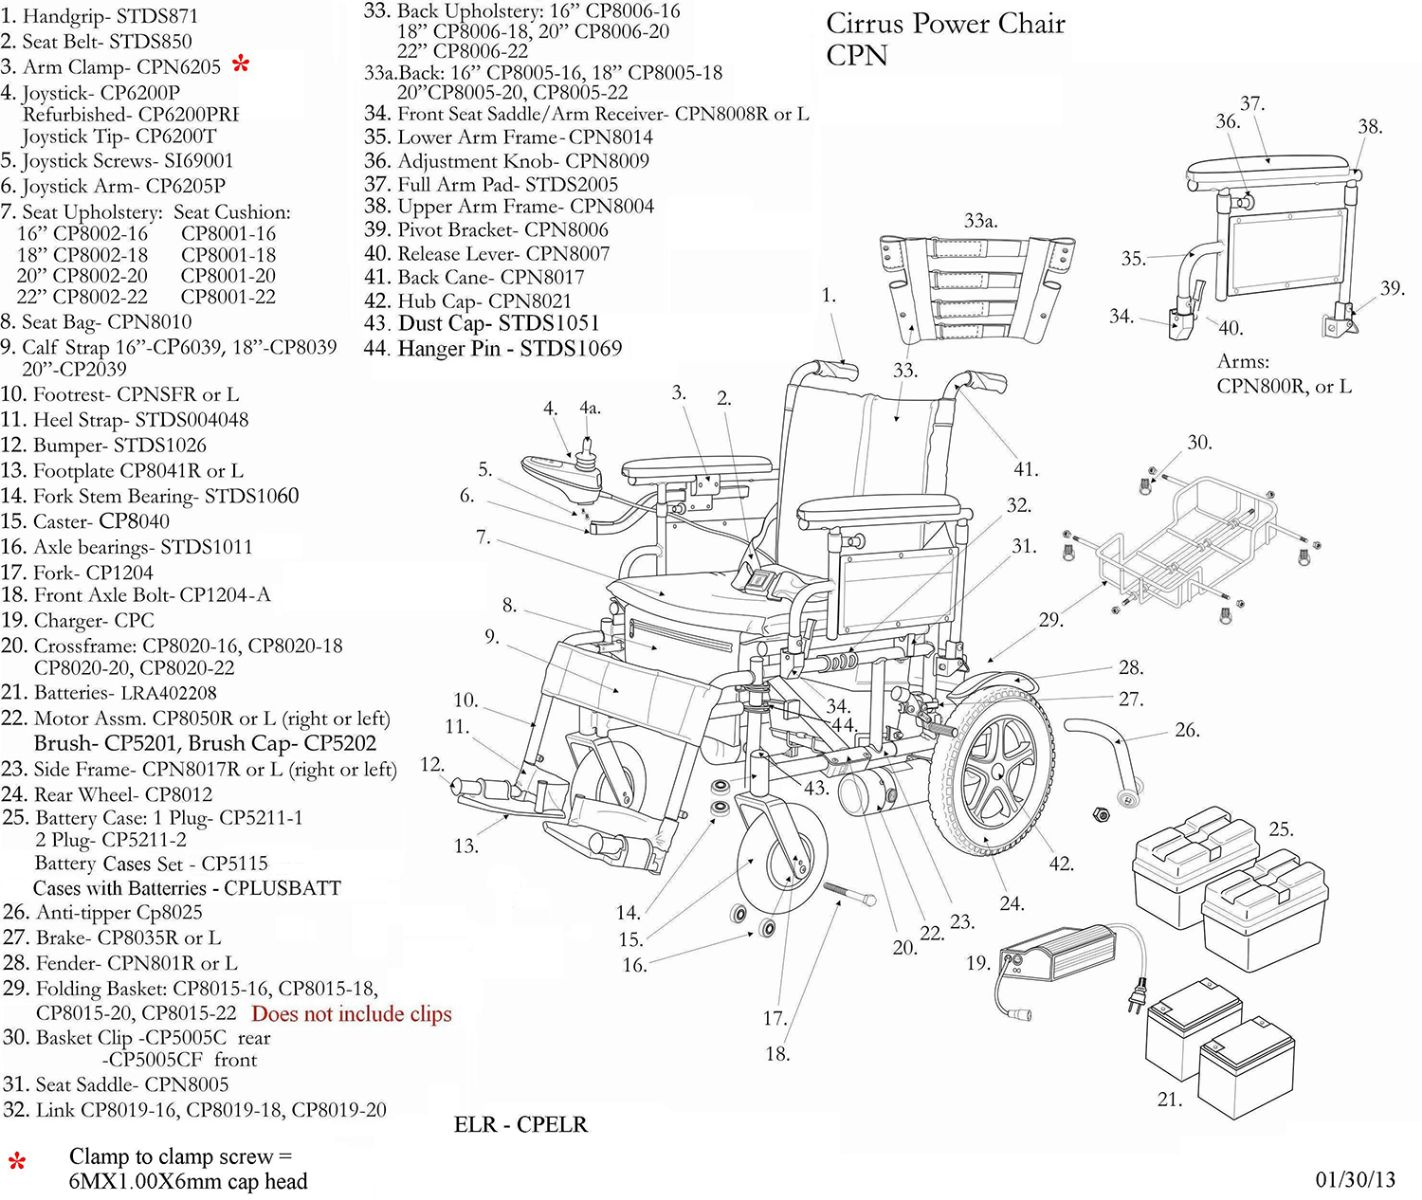 Replacement Parts For Cirrus Plus Ec Power Chairs